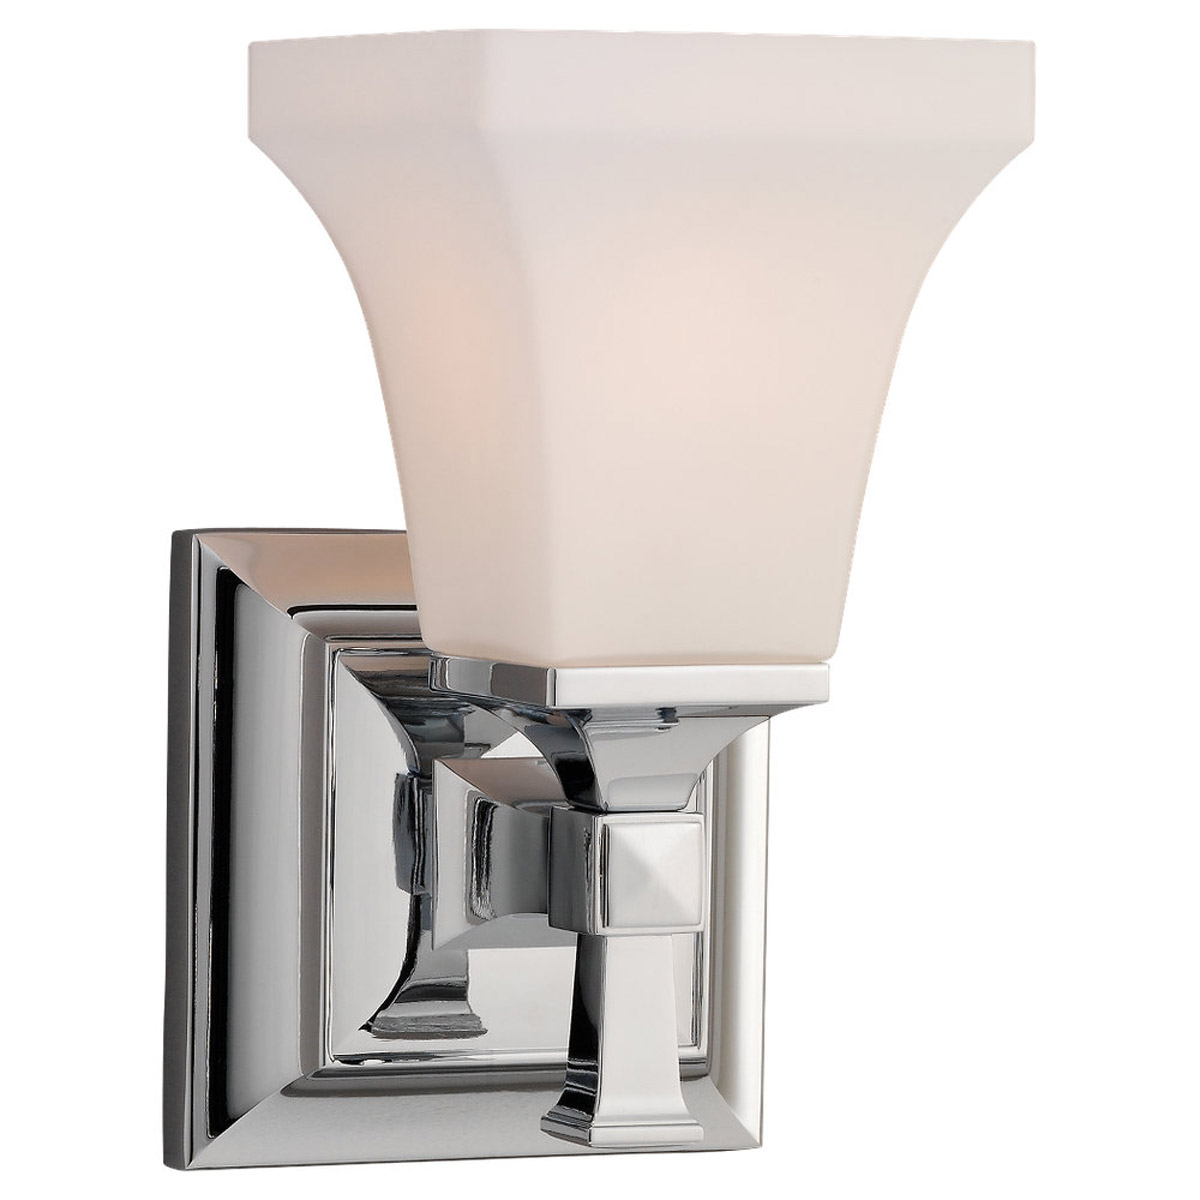 Sea Gull Lighting Melody 1 Light Bath Vanity in Chrome 44705-05 photo